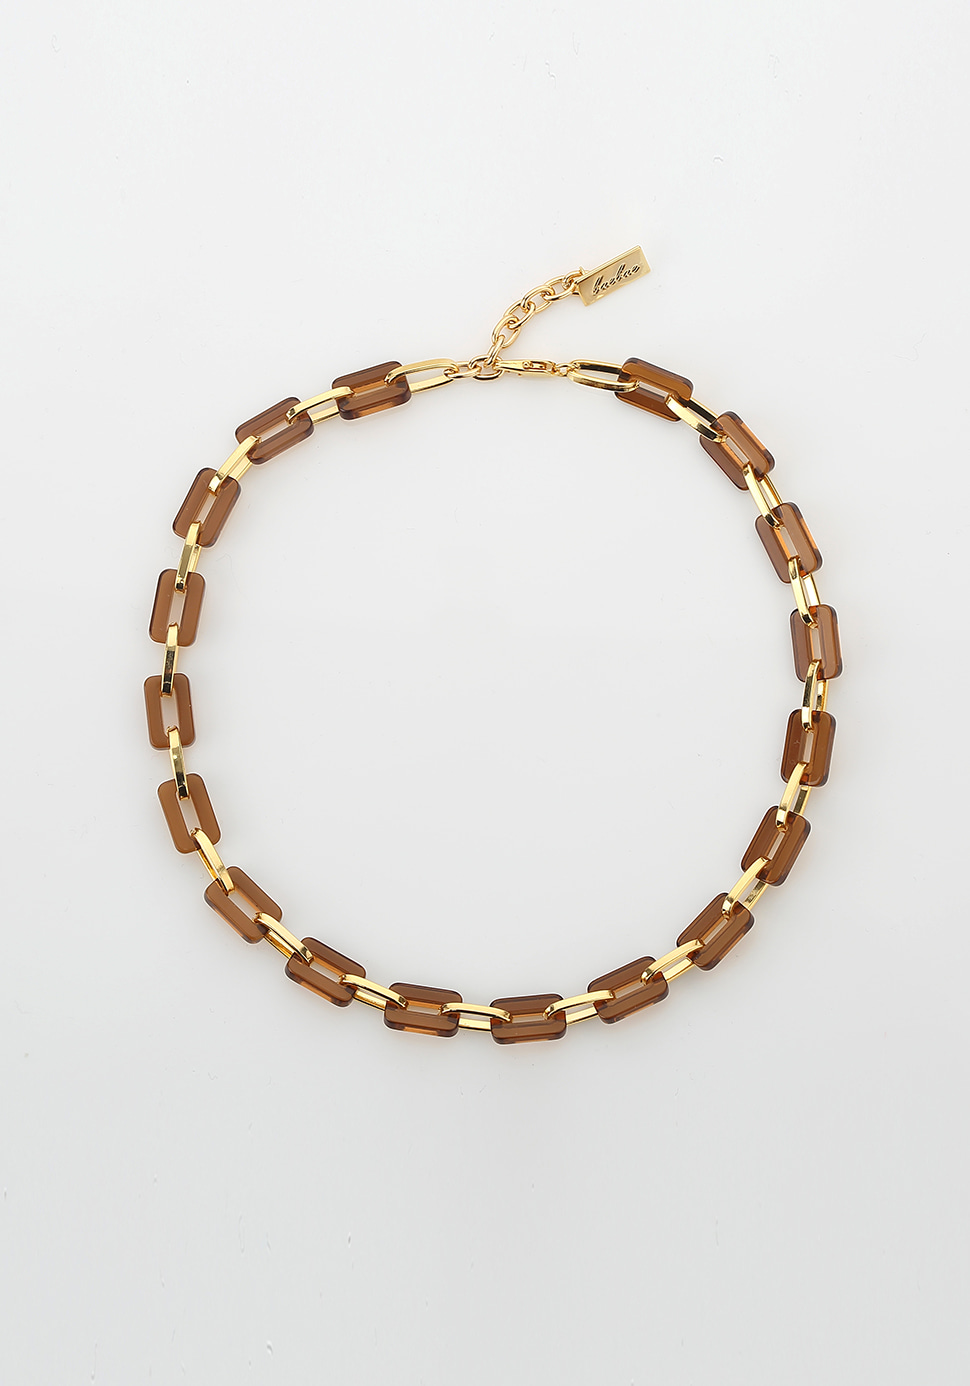 Acrylic Chain Necklace (brown-2 length)